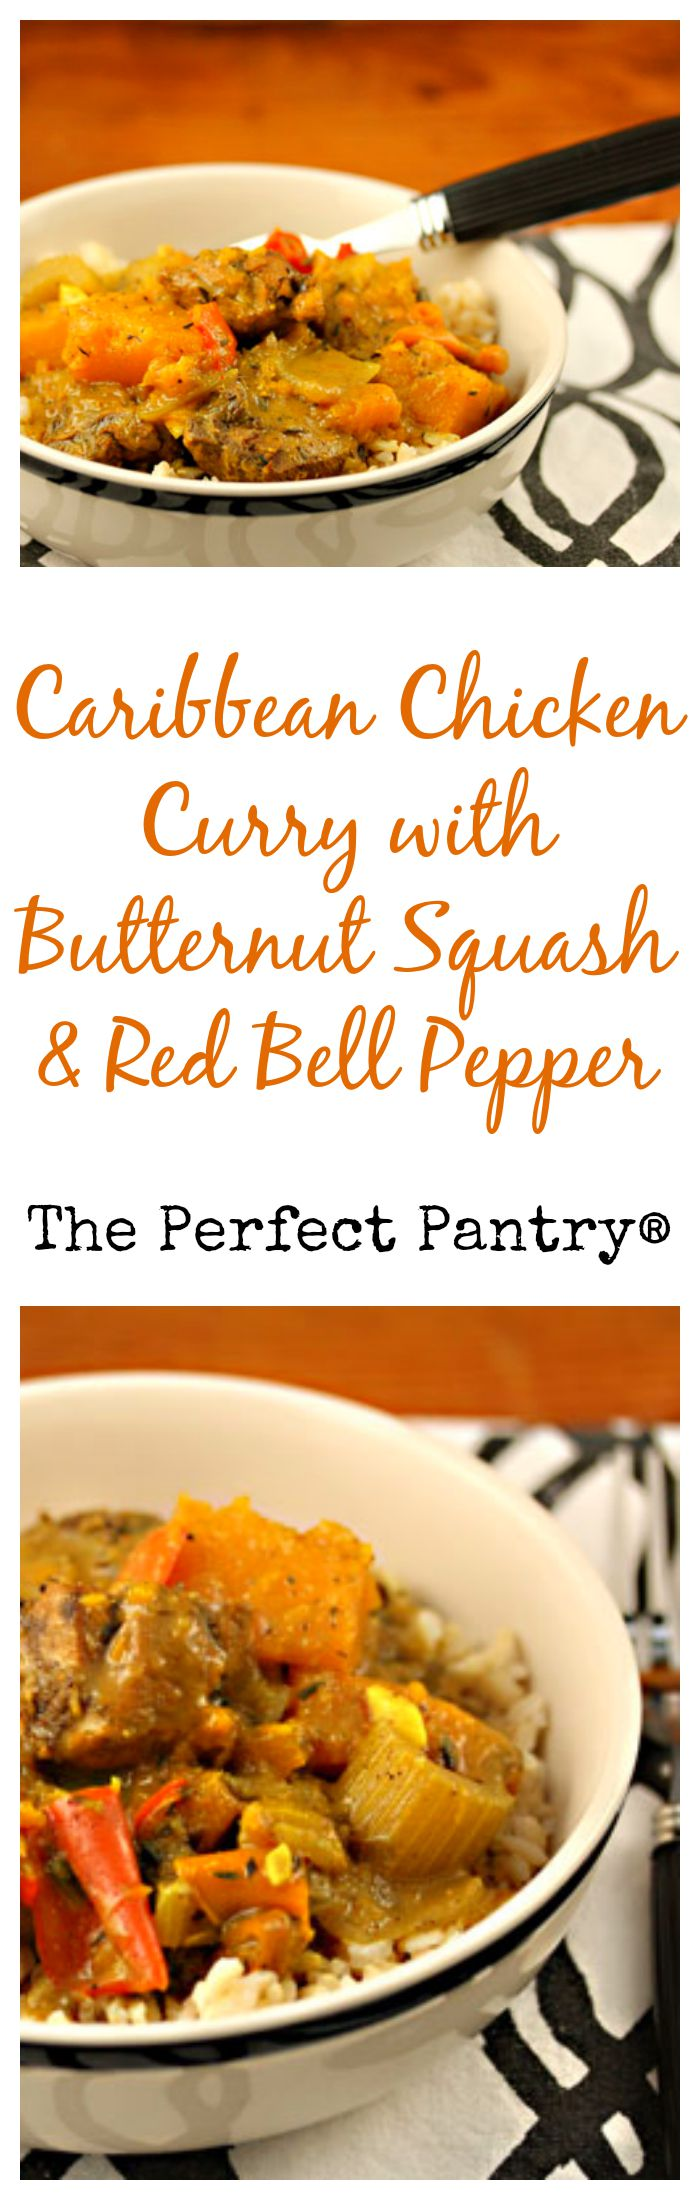 The Perfect Pantry®: Recipe for Caribbean chicken curry ...